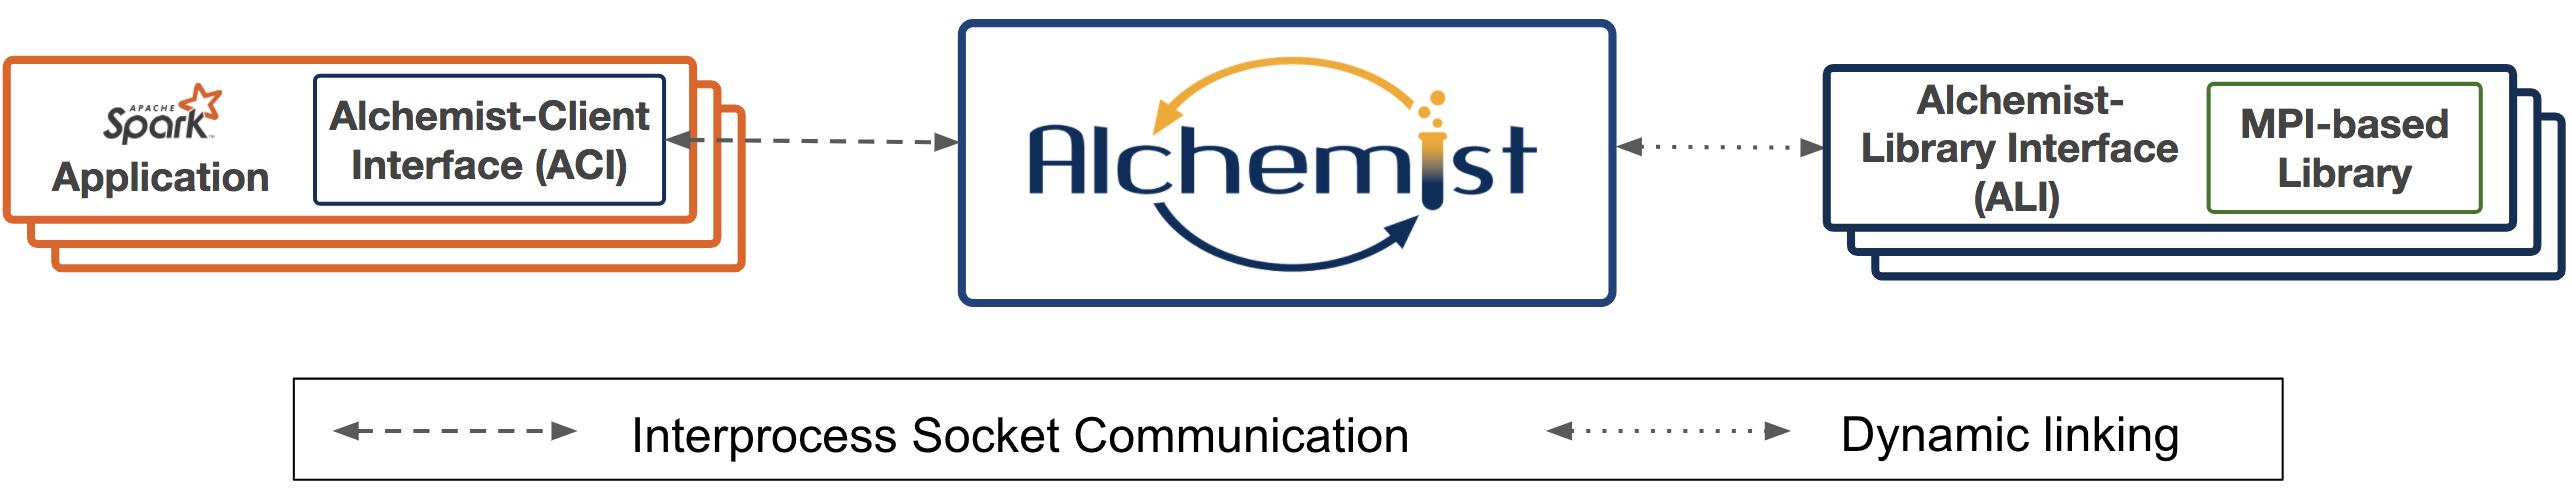 Outline of the Alchemist framework. One or more Spark applications can each call one or more MPI-based libraries to help accelerate some numerical computations. Alchemist acts as an interface between the applications and the libraries, with data between Alchemist and the applications transmitted using TCP sockets. Alchemist loads the libraries dynamically at runtime.